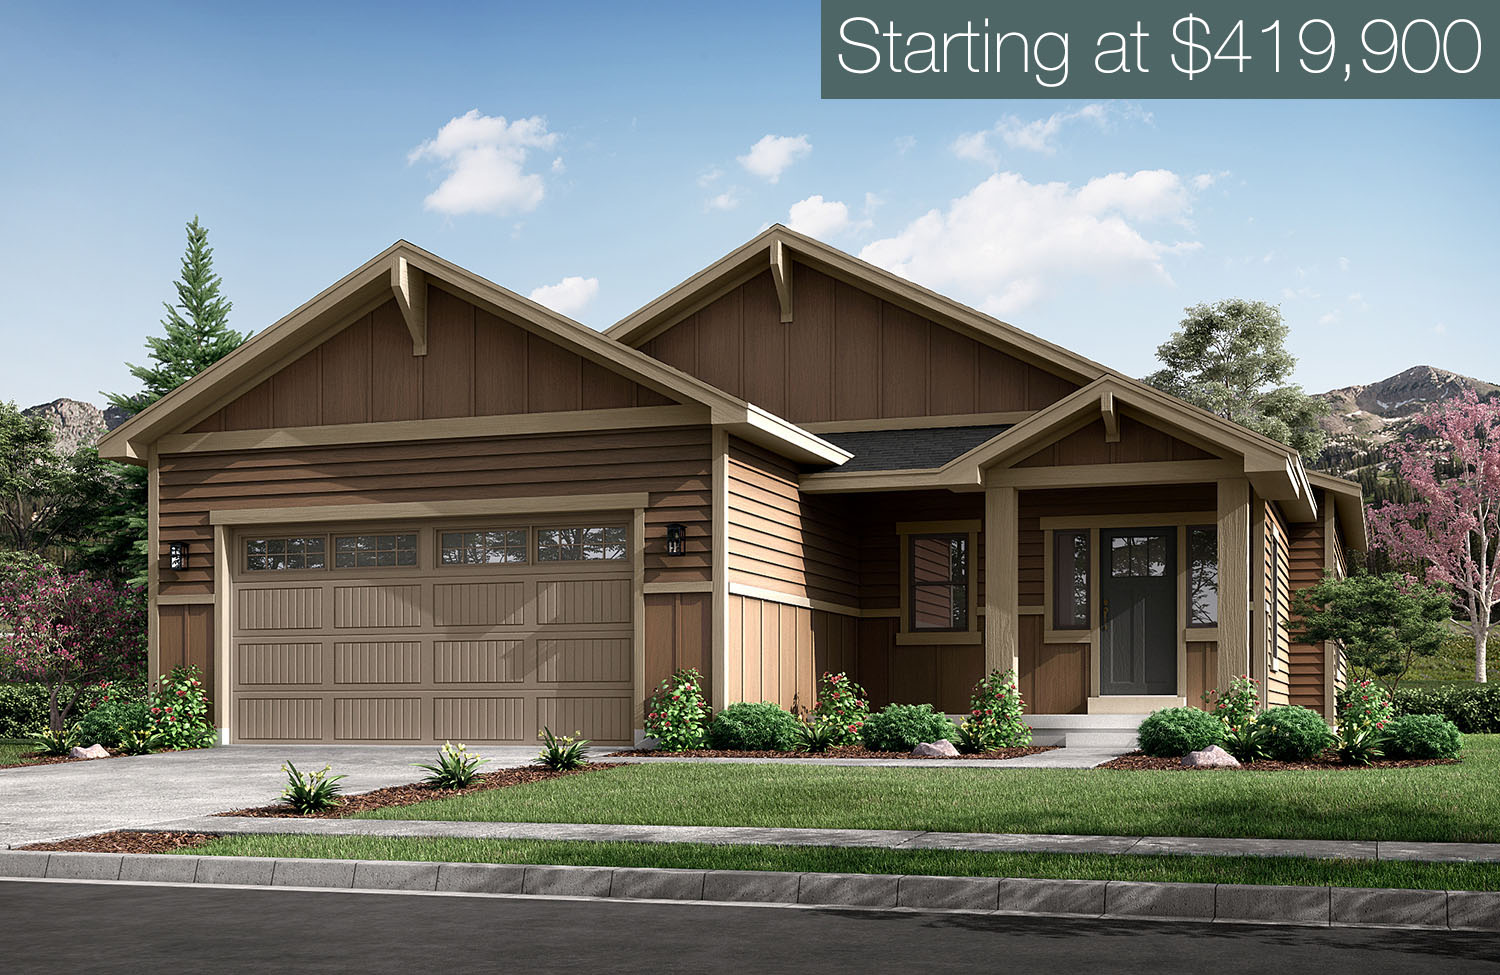 victor idaho home builder